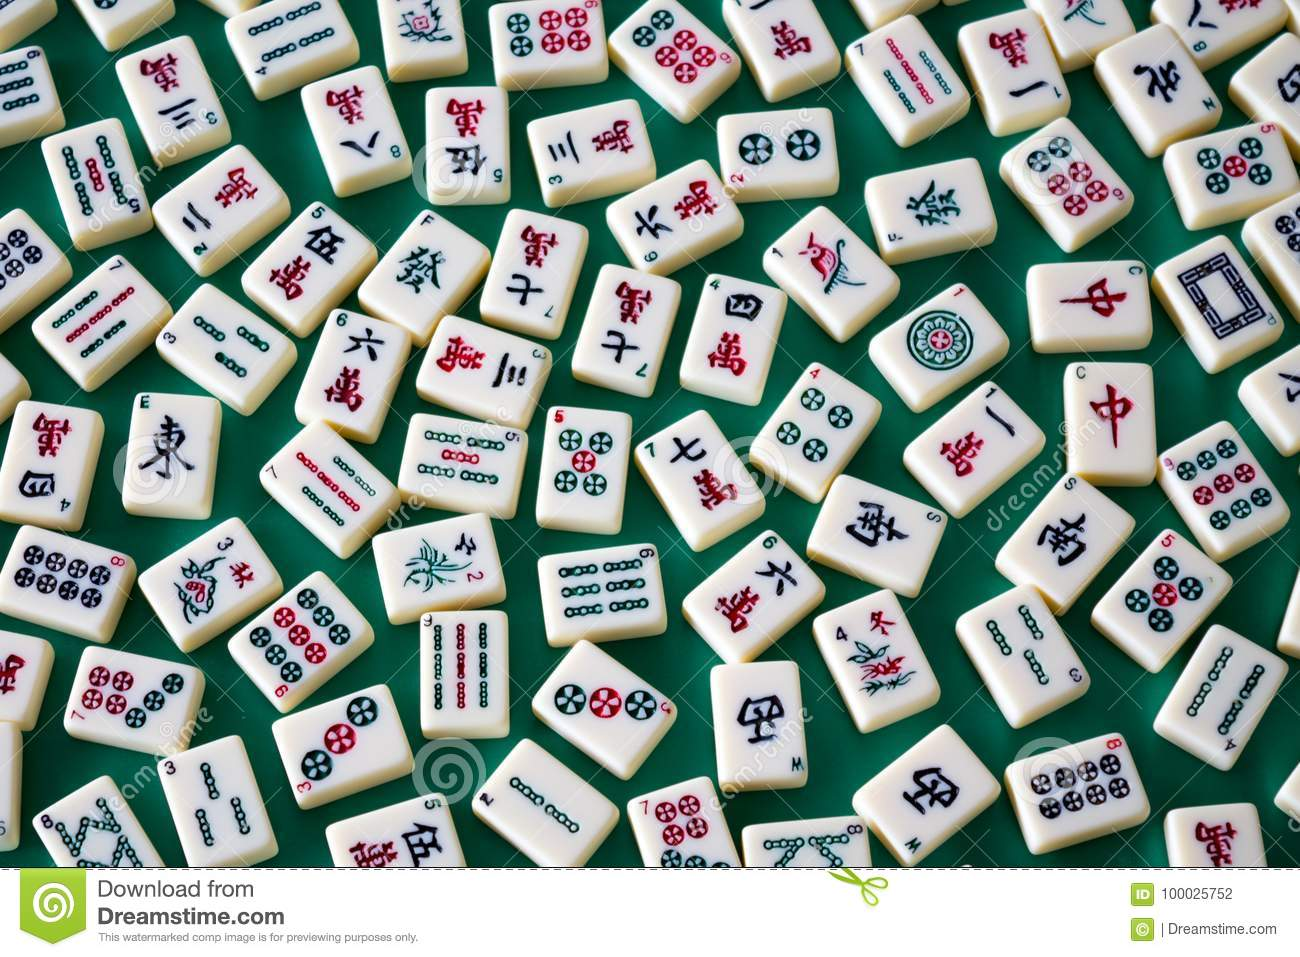 Mahjong tiles stock photo  Image of asia, gamble, chinese